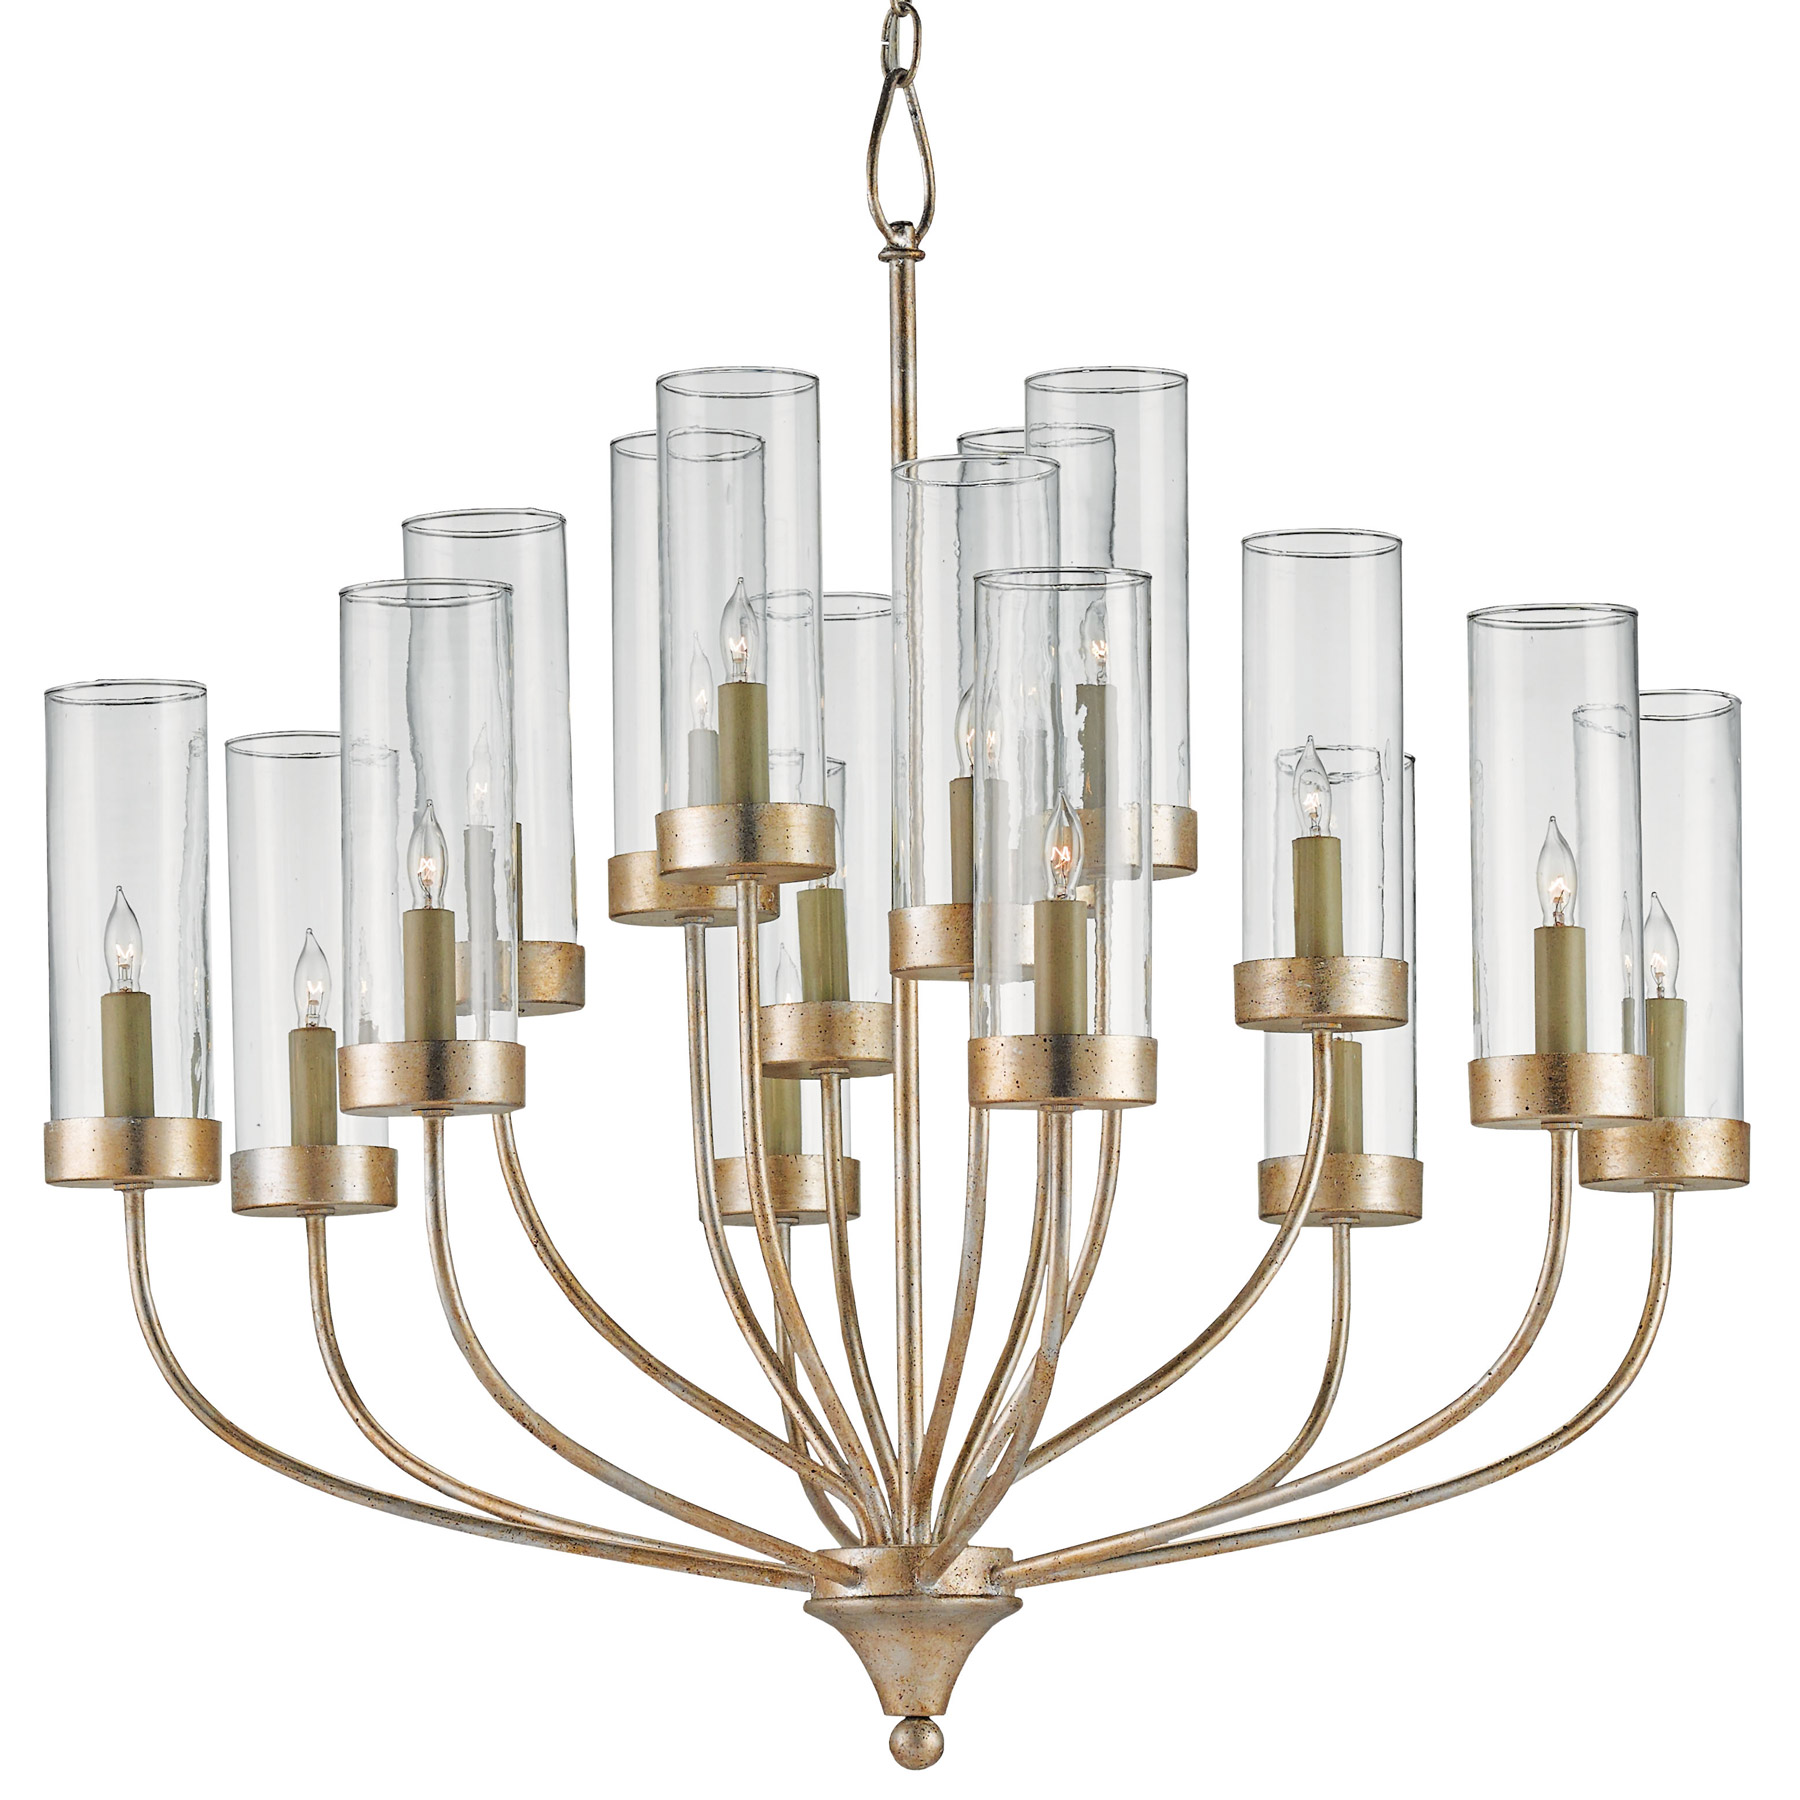 Currey And Company Coral Chandelier: Currey And Company 9633 Hove Chandelier